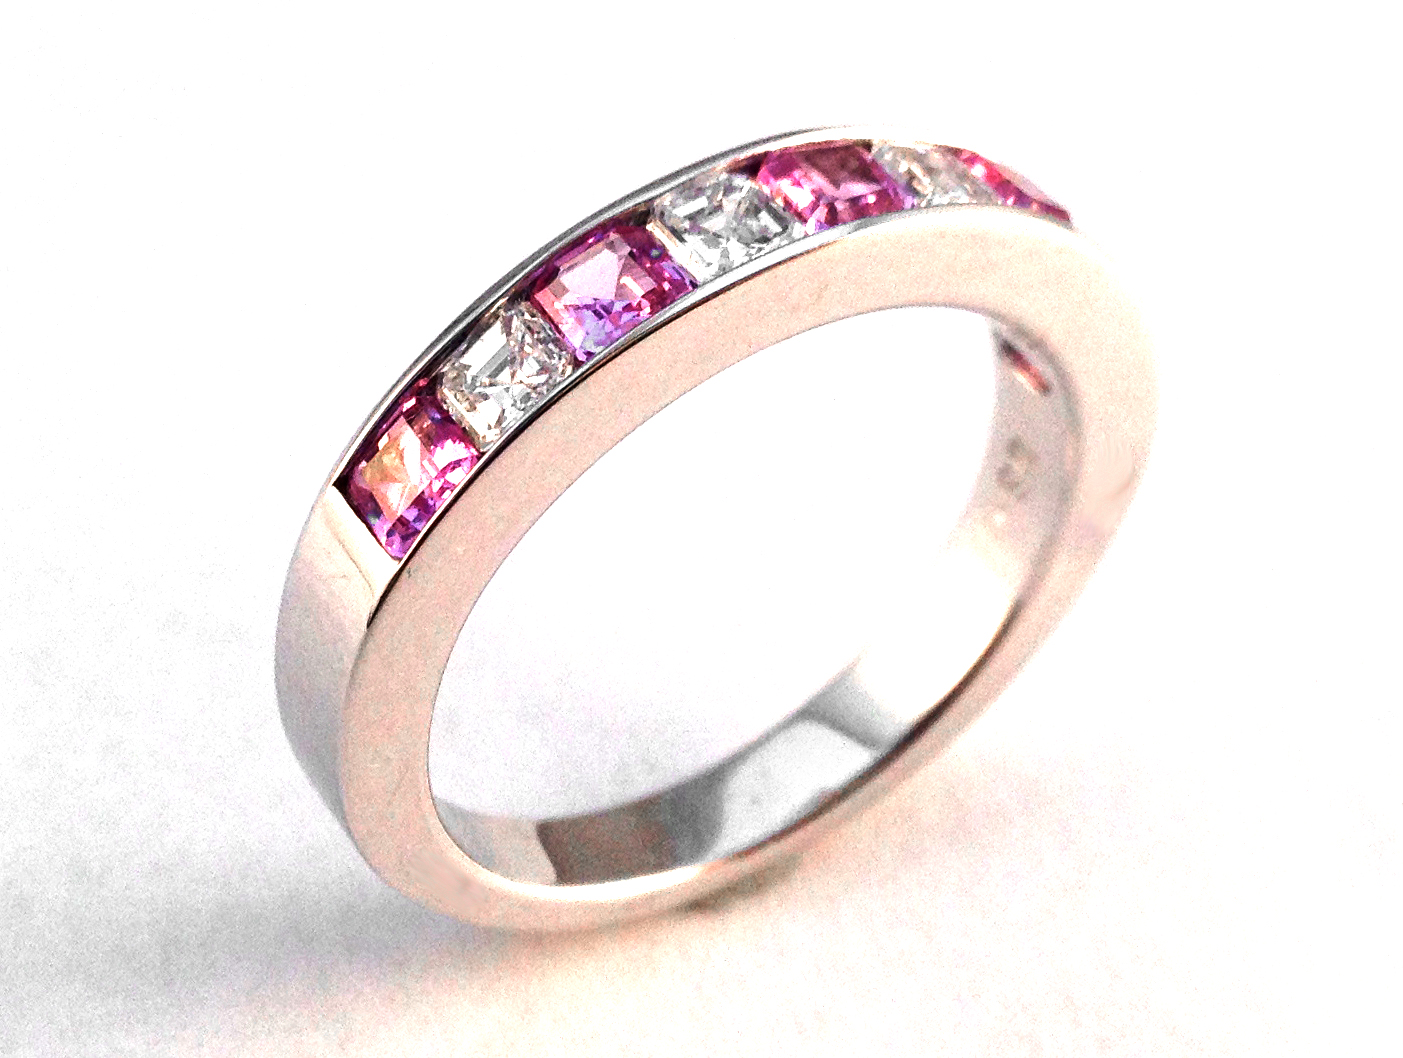 Four Stone Asscher Diamond & Pink Sapphire Wedding Band 0.9 tcw. Channel Set in 14K White Gold